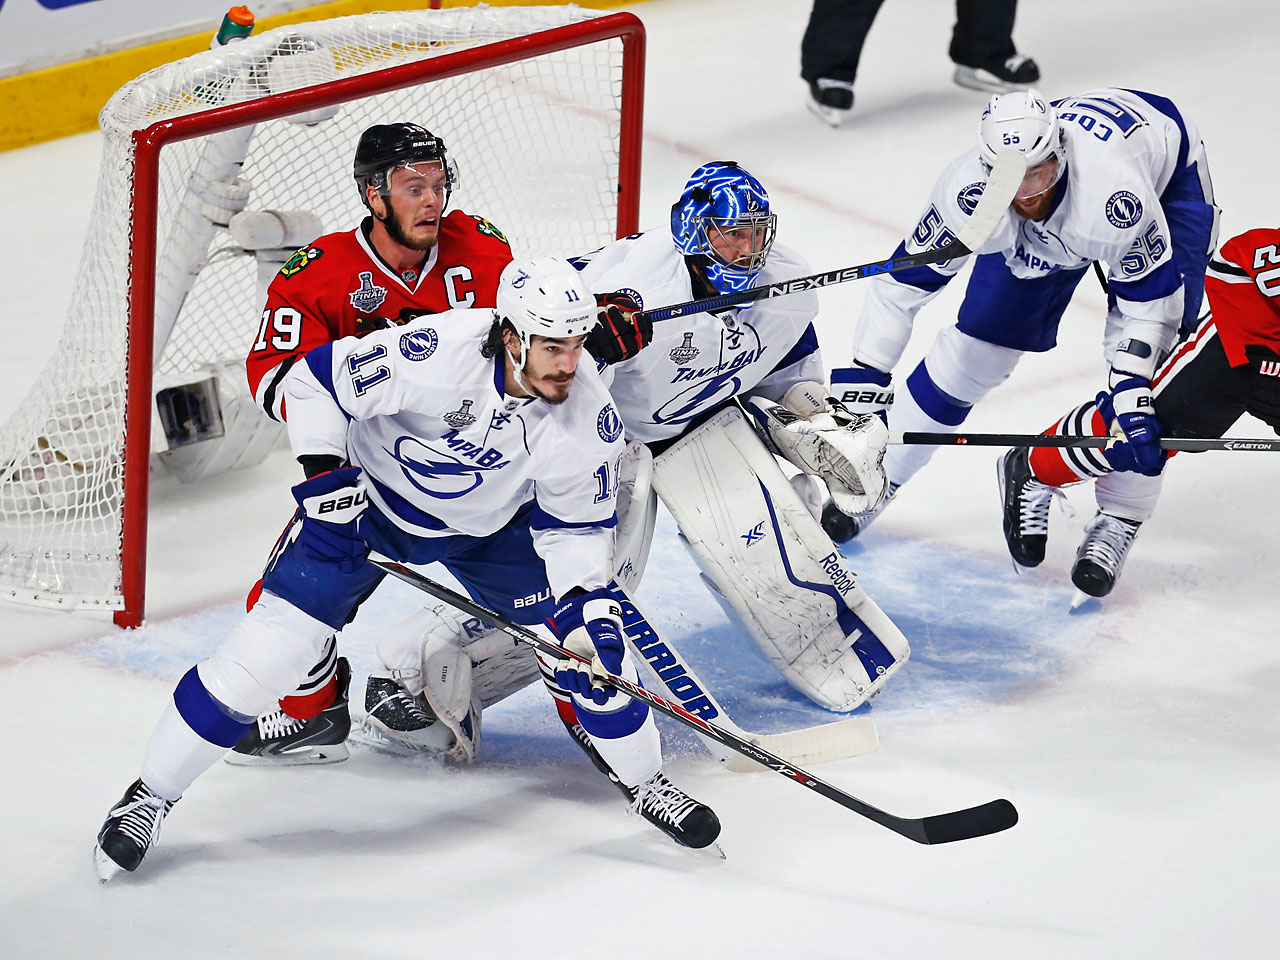 Ben Bishop made 36 saves in a gutsy performance after he was questionable coming into the game. (Text credit: AP)